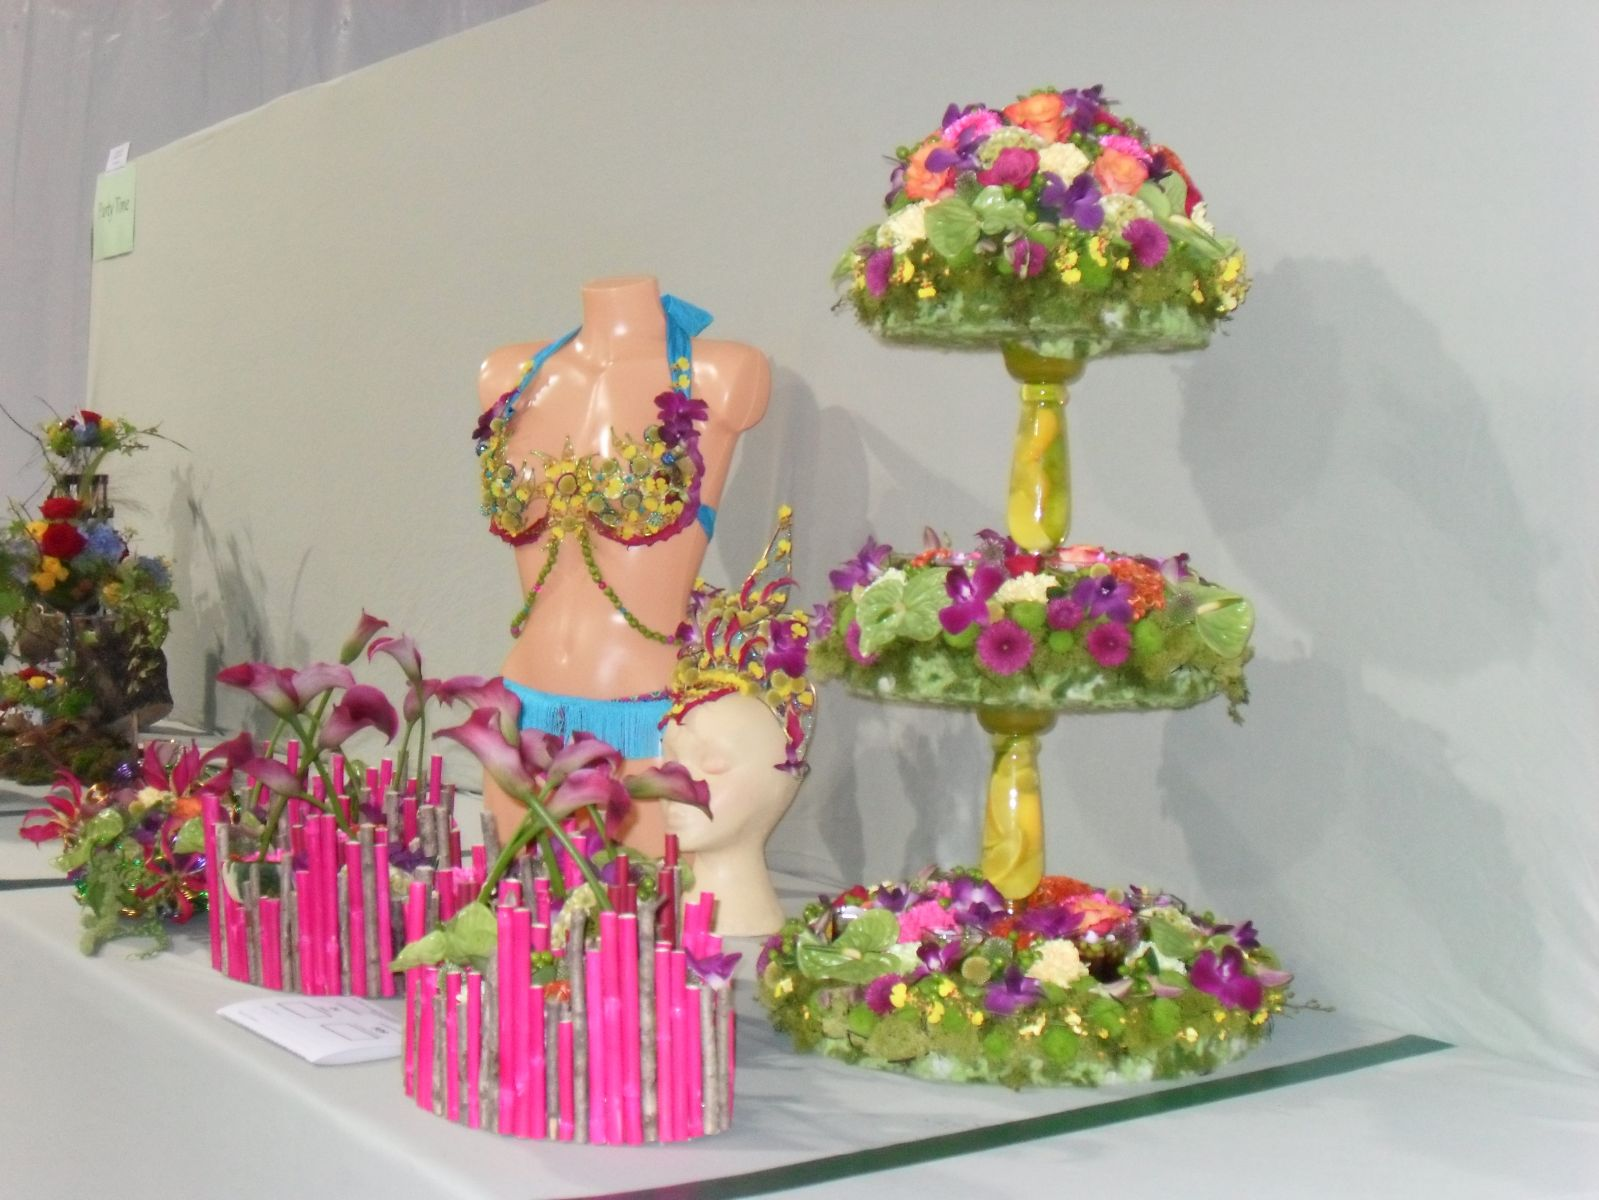 SOUTHPORT FLOWER SHOW 2014 GOLD AWARD DISPLAY